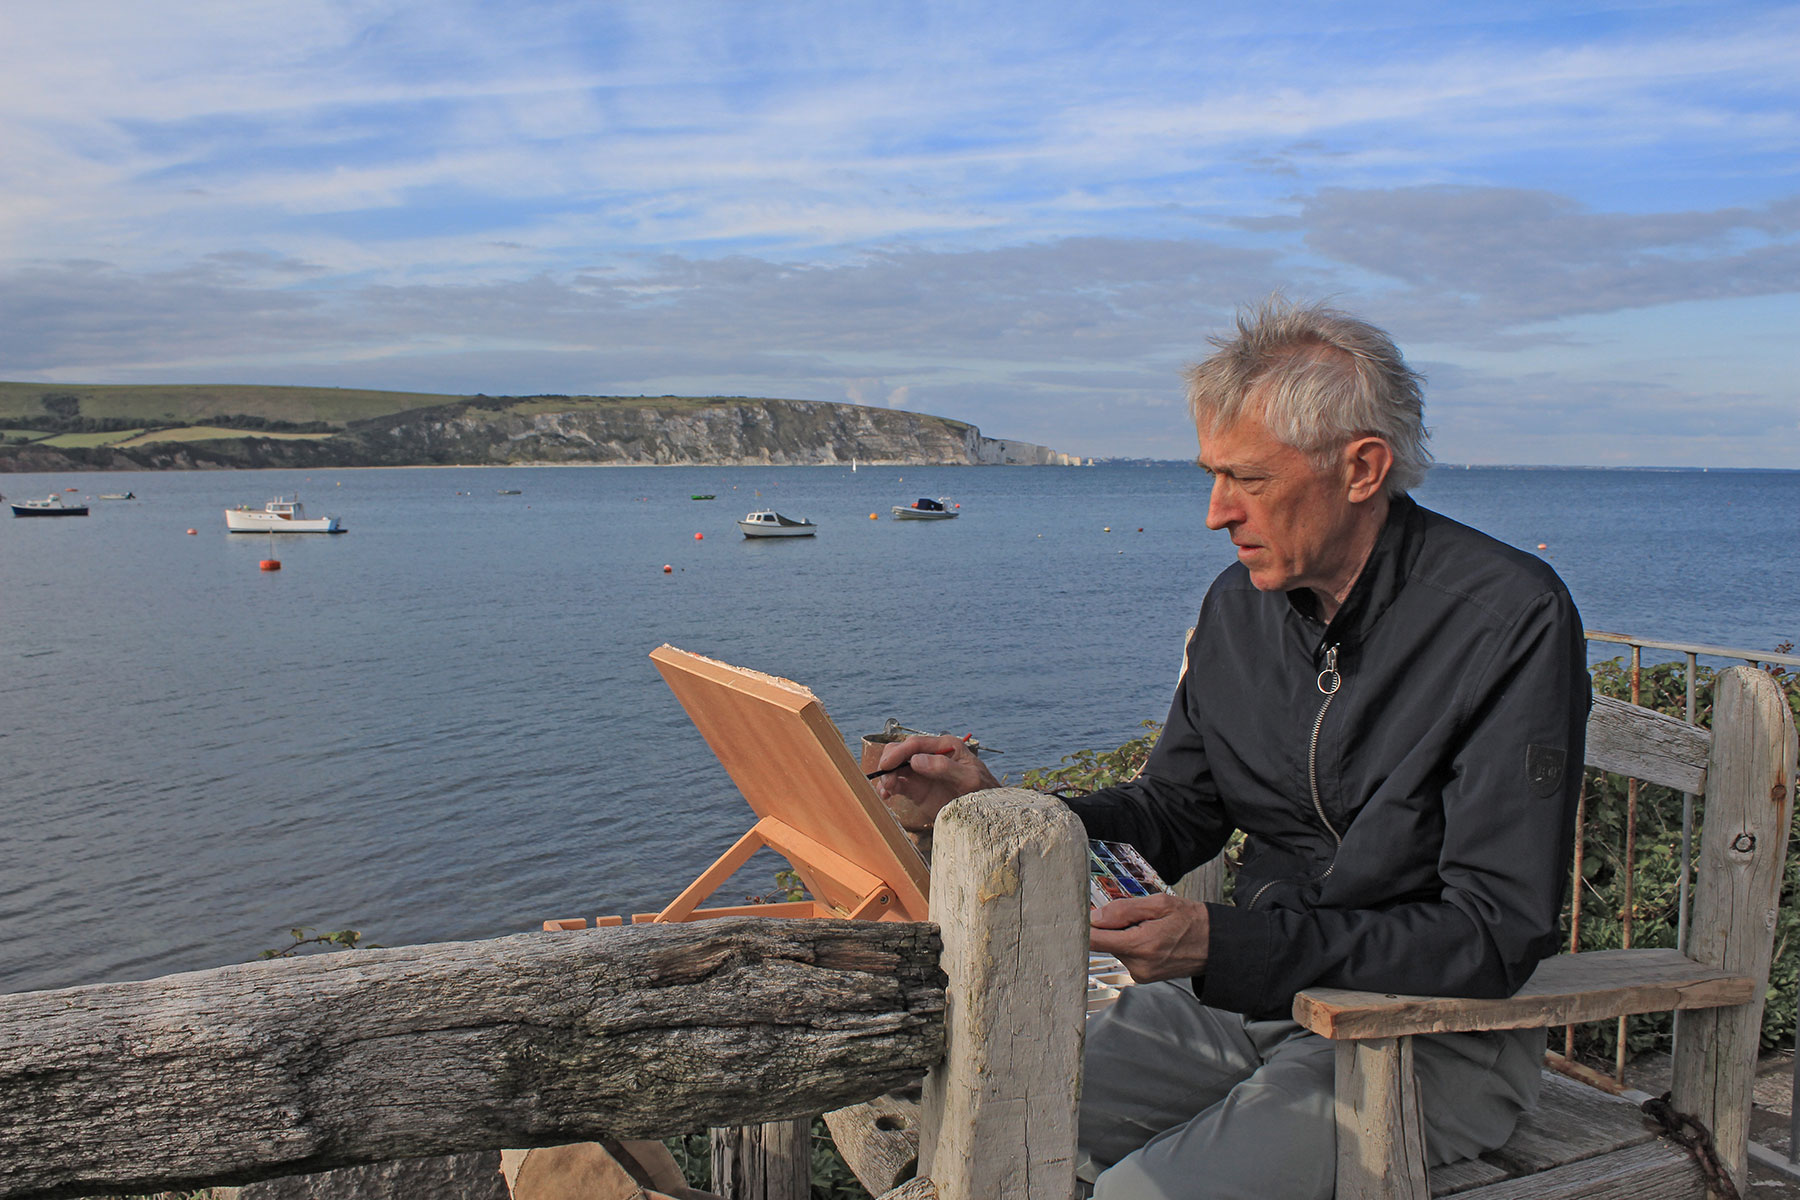 _Jeremy-painting-plein-air-Swanage-IMG_6262